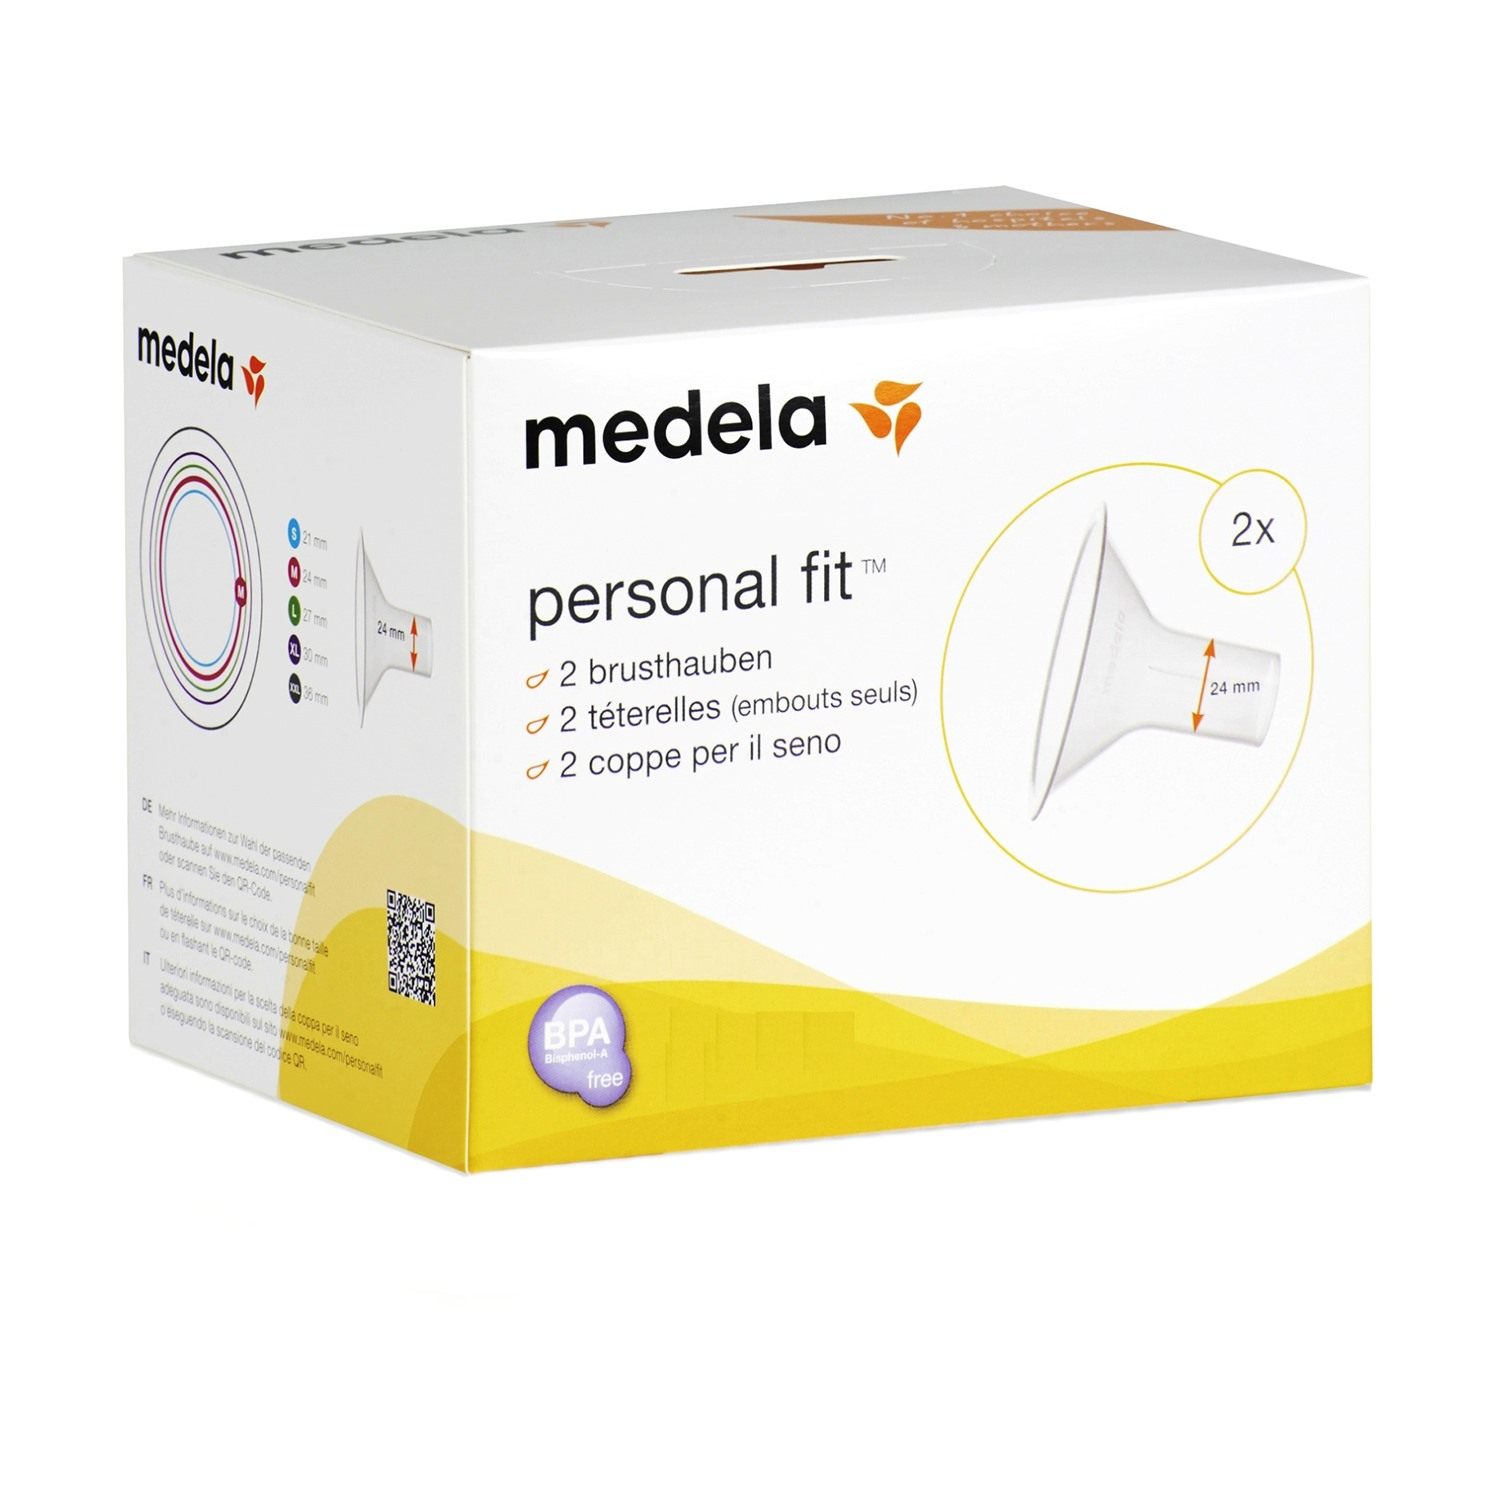 Medela Personal Fit Brestshield Medium (24 Mm) - 2 Nos